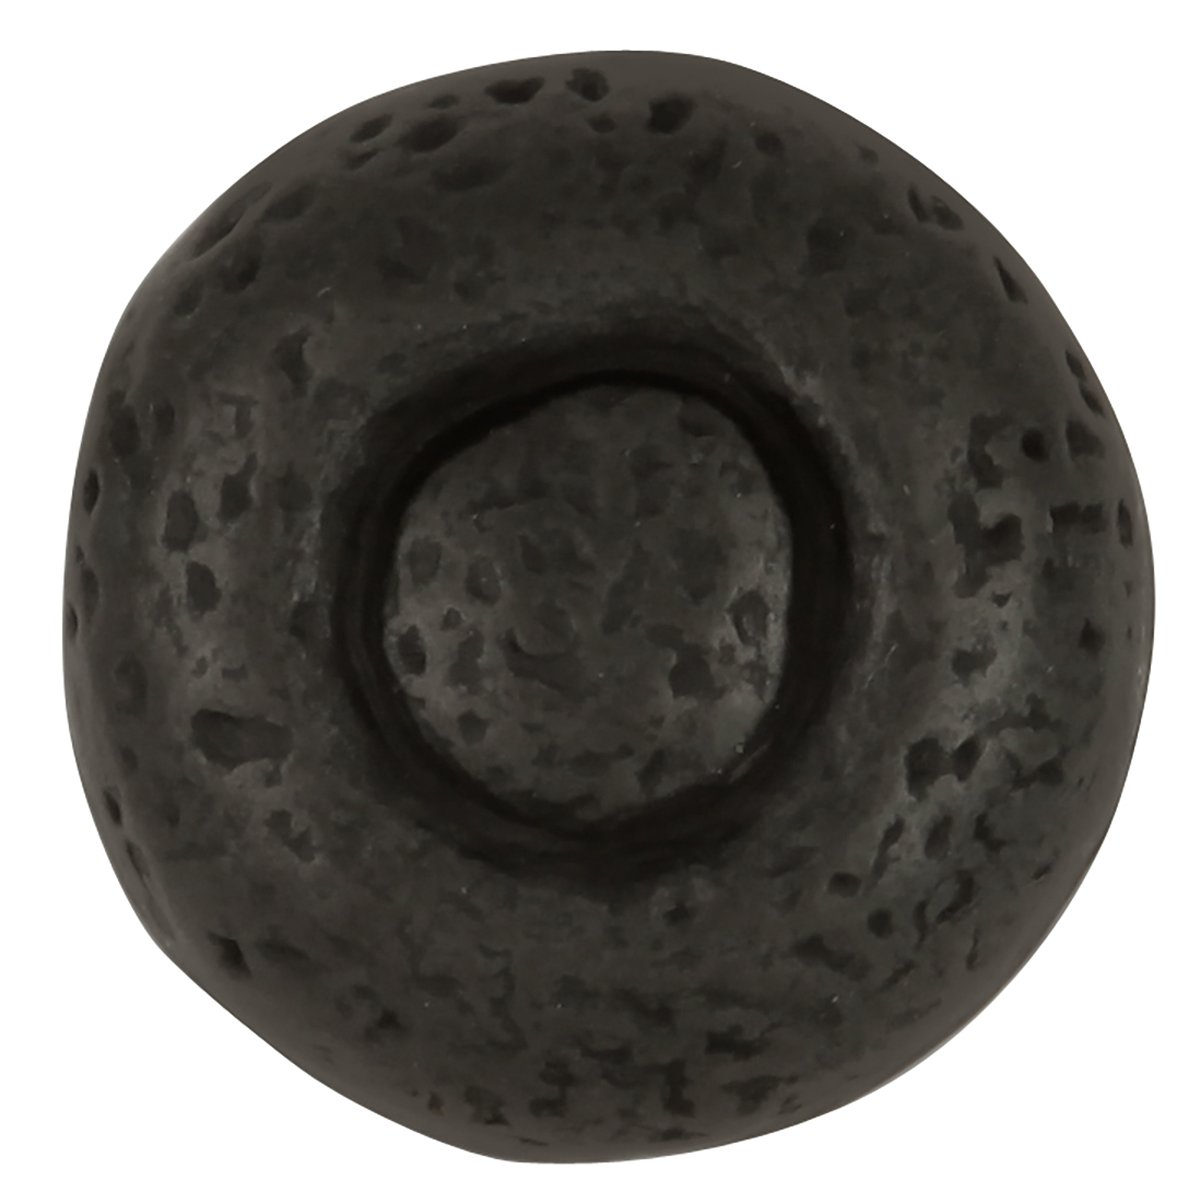 Hickory Hardware P3003-BI-25B Refined Rustic Collection Knob, 1-1/2 Inch Diameter, Black Iron, 25 Each by Hickory Hardware (Image #3)